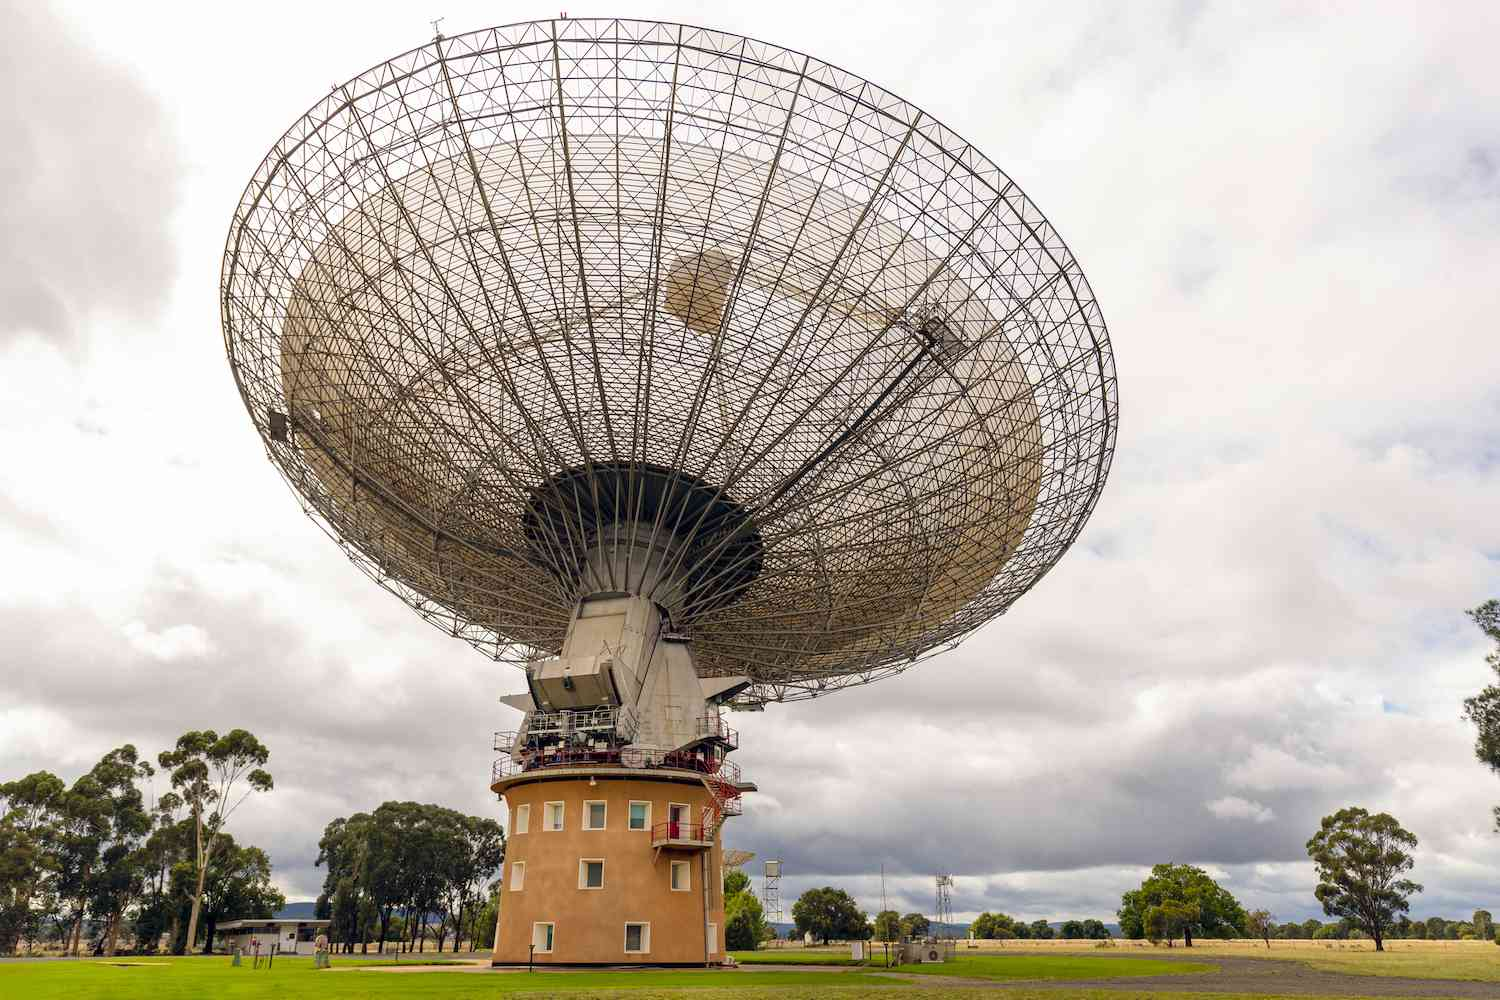 The second largest radio telescope in the Southern Hemisphere sits atop the circular Parkes Observatory on a cloudy day